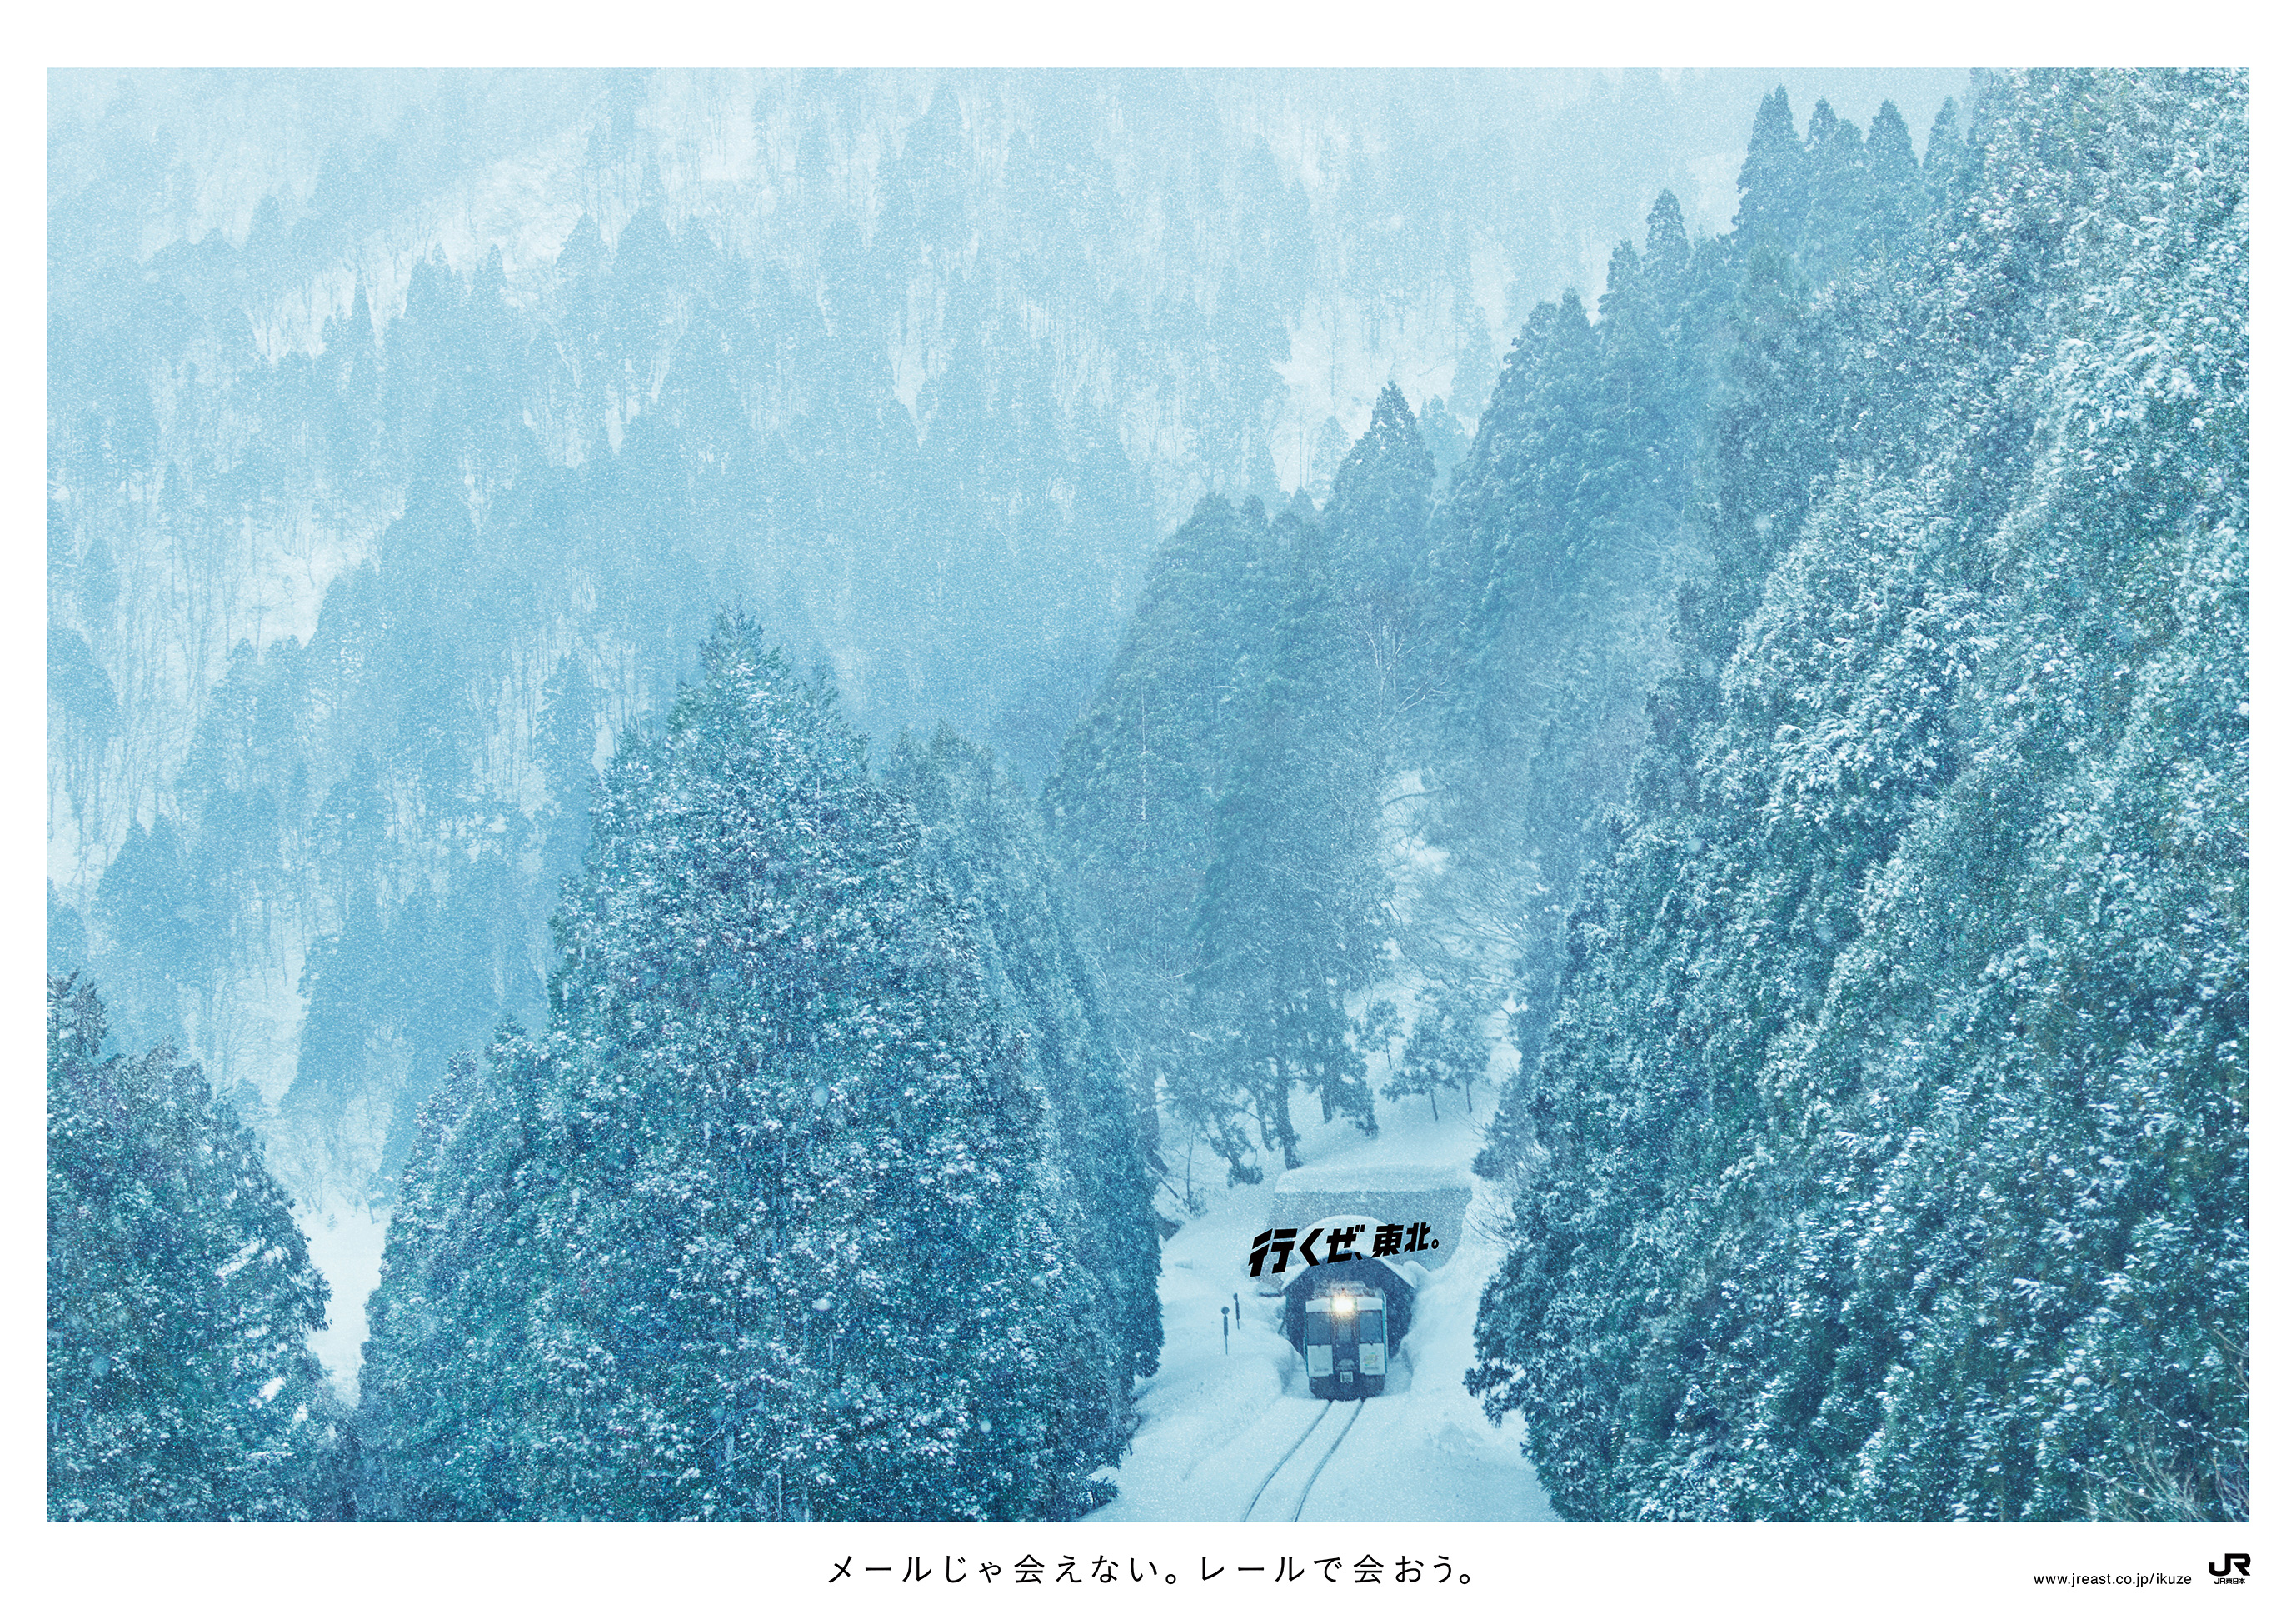 10.JR_ikuze_2015_winter1_B0_train_151006ol